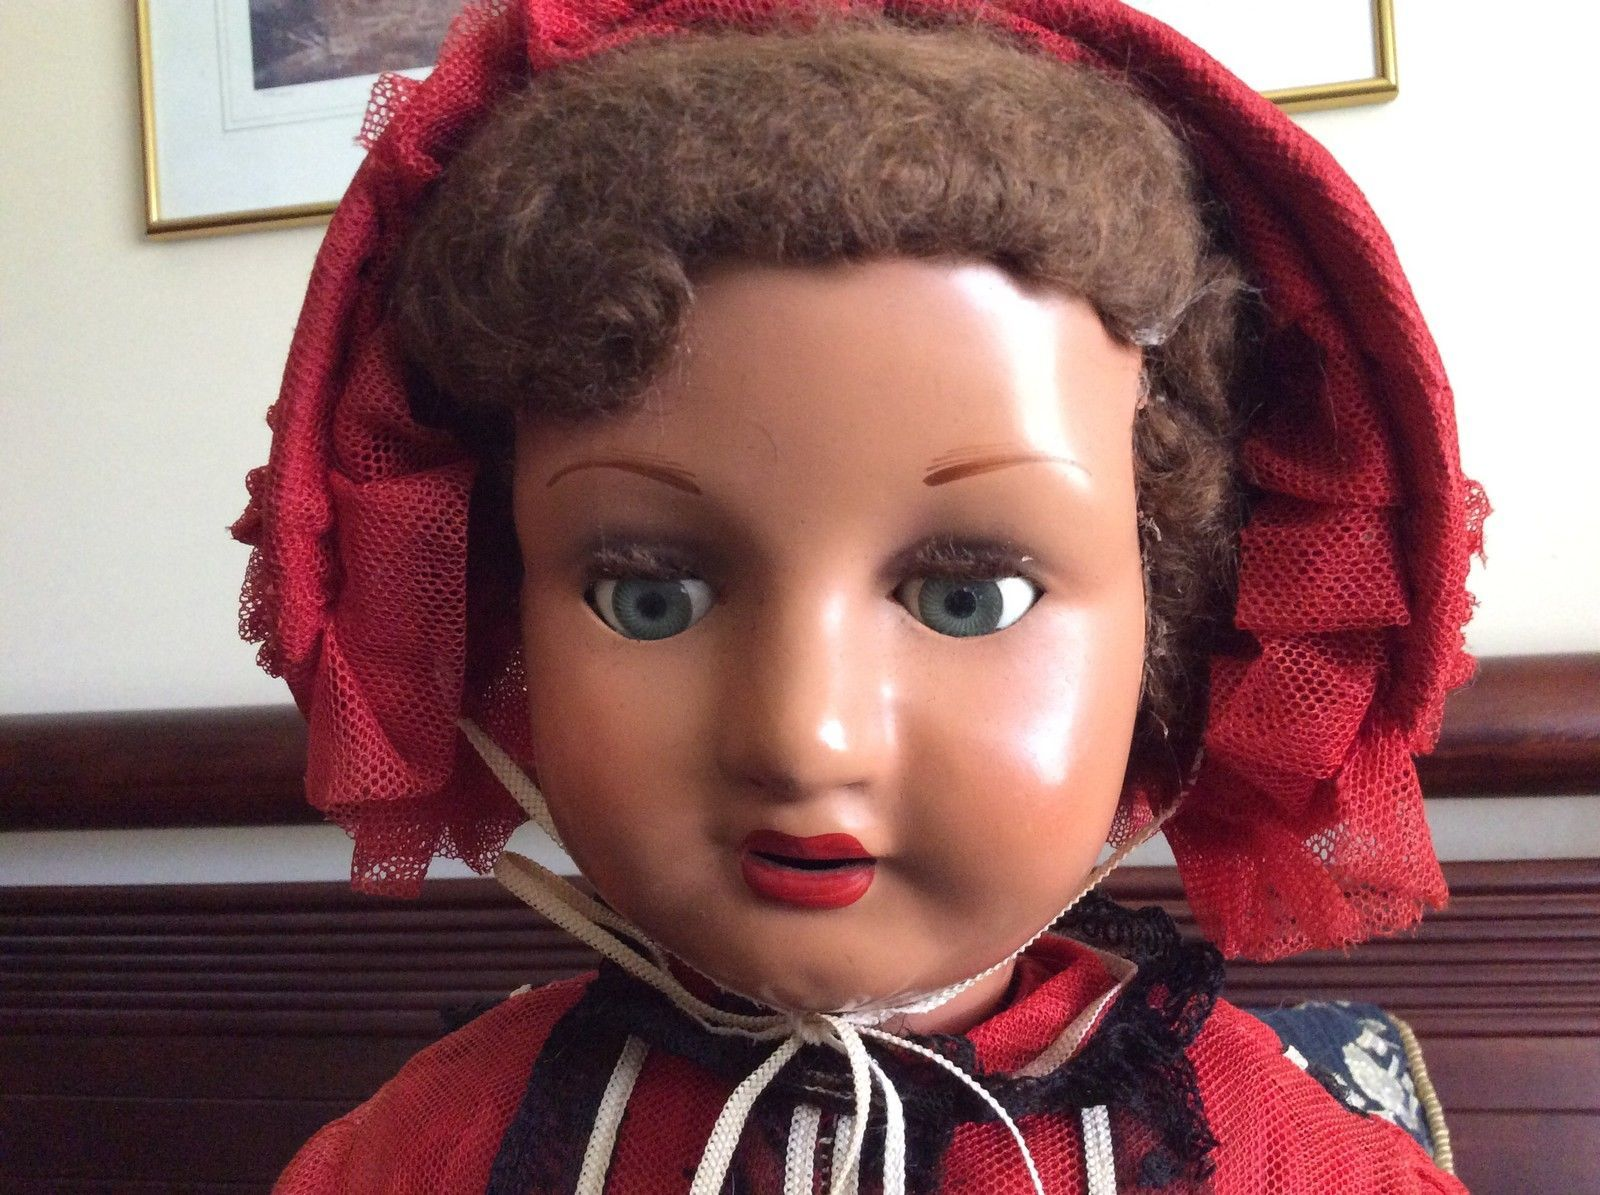 Huge Rare 27 Inch Vintage Australian Composition Doll in